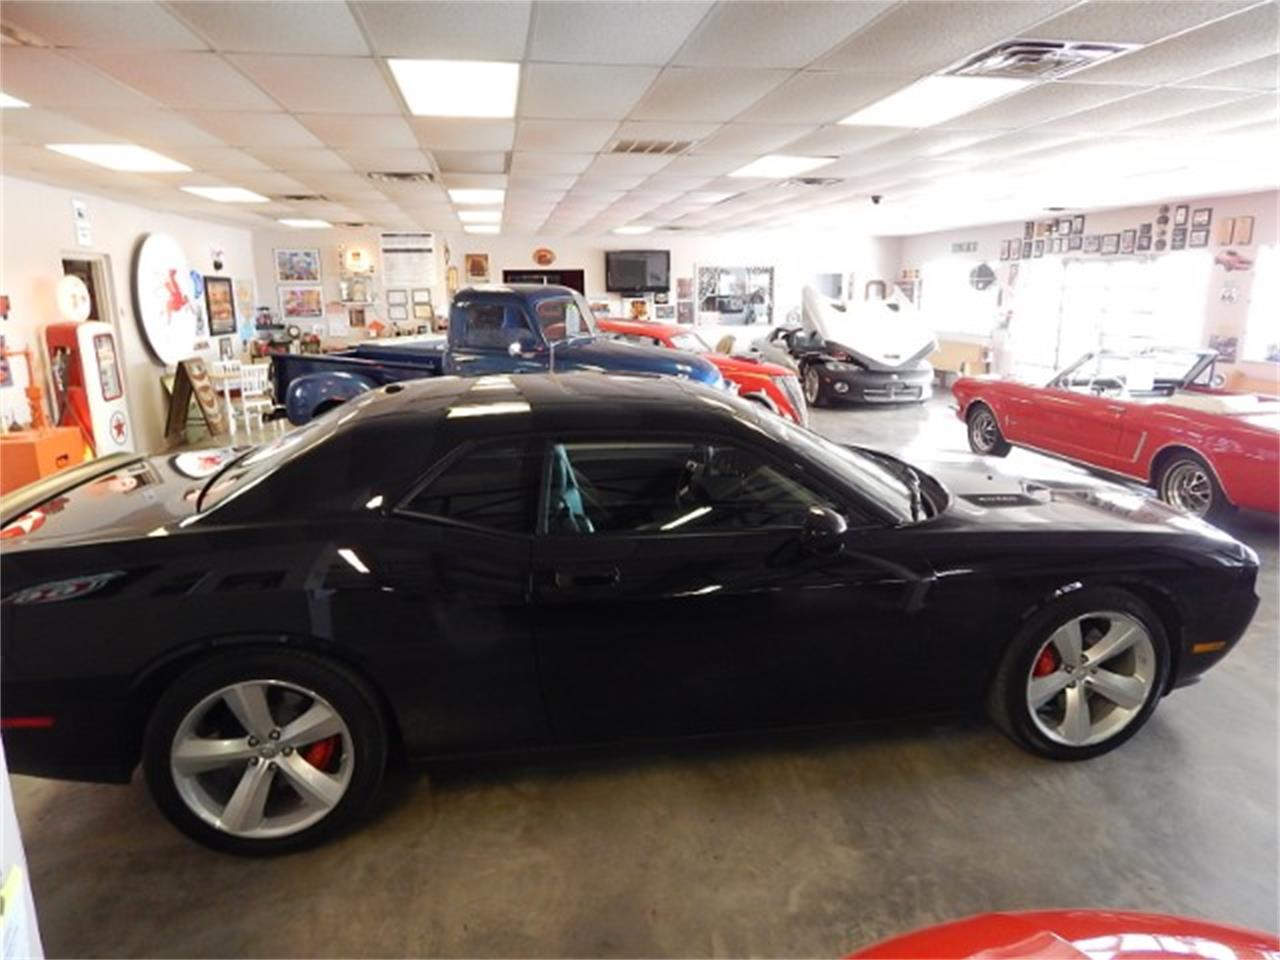 2008 Dodge Challenger for sale in Wichita Falls, TX – photo 7